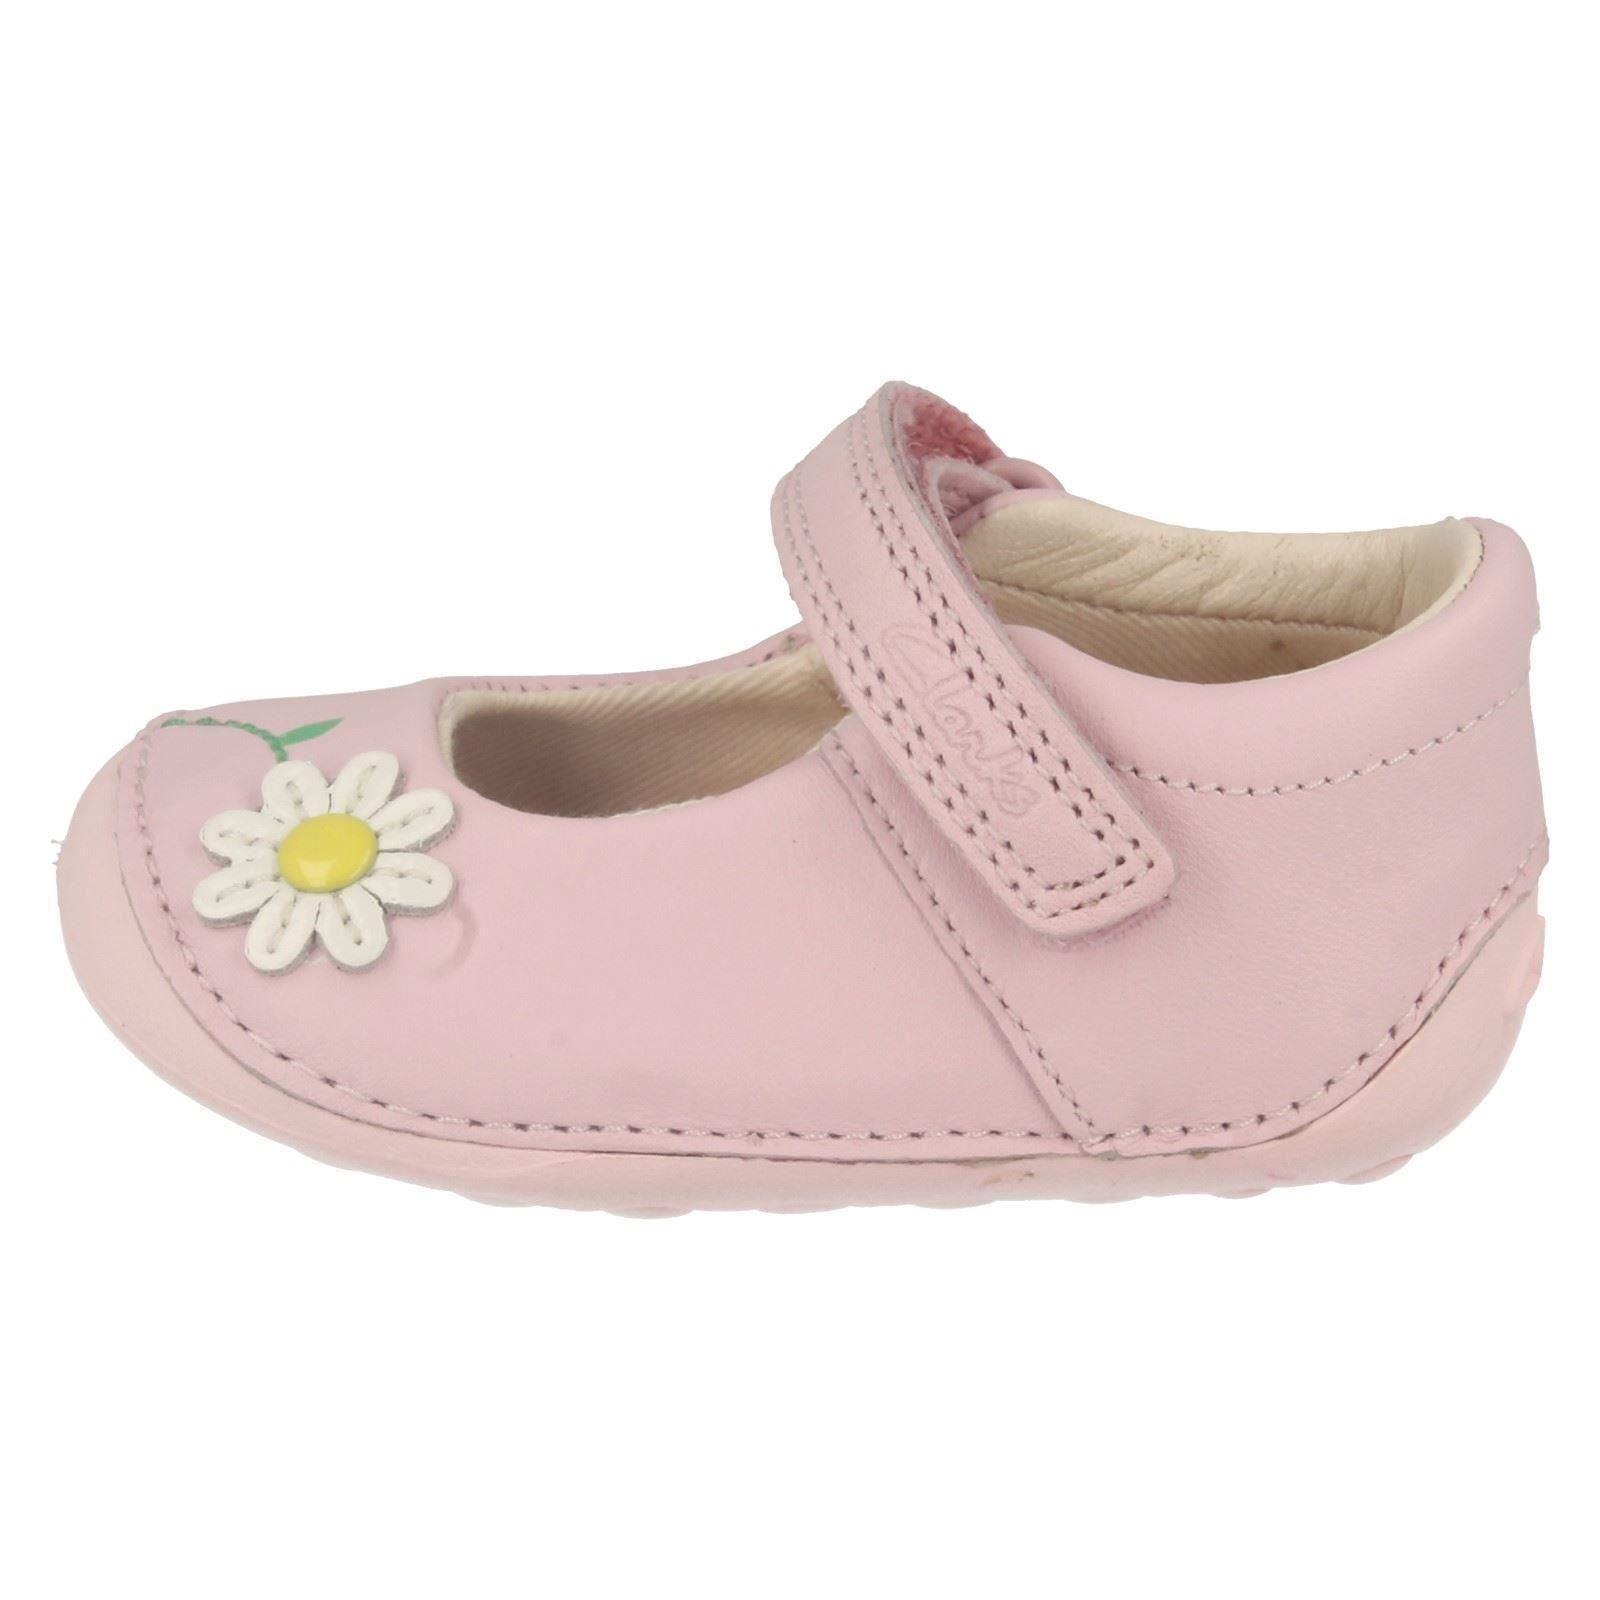 Infant Baby Girls Clarks Hook & Loop Leather Cruiser Shoes